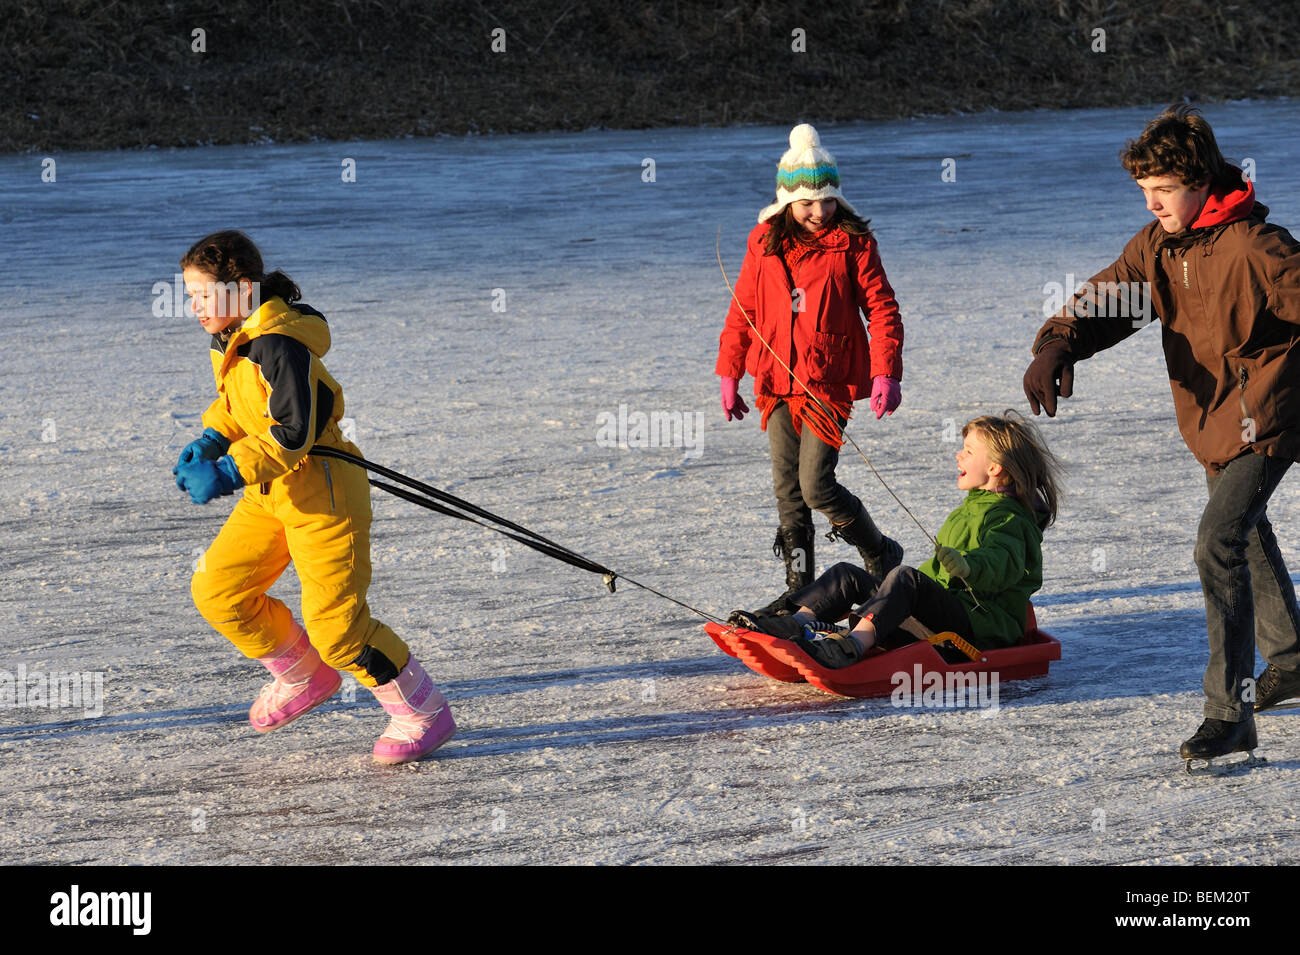 Child on sledge and ice skaters on frozen canal in winter - Stock Image